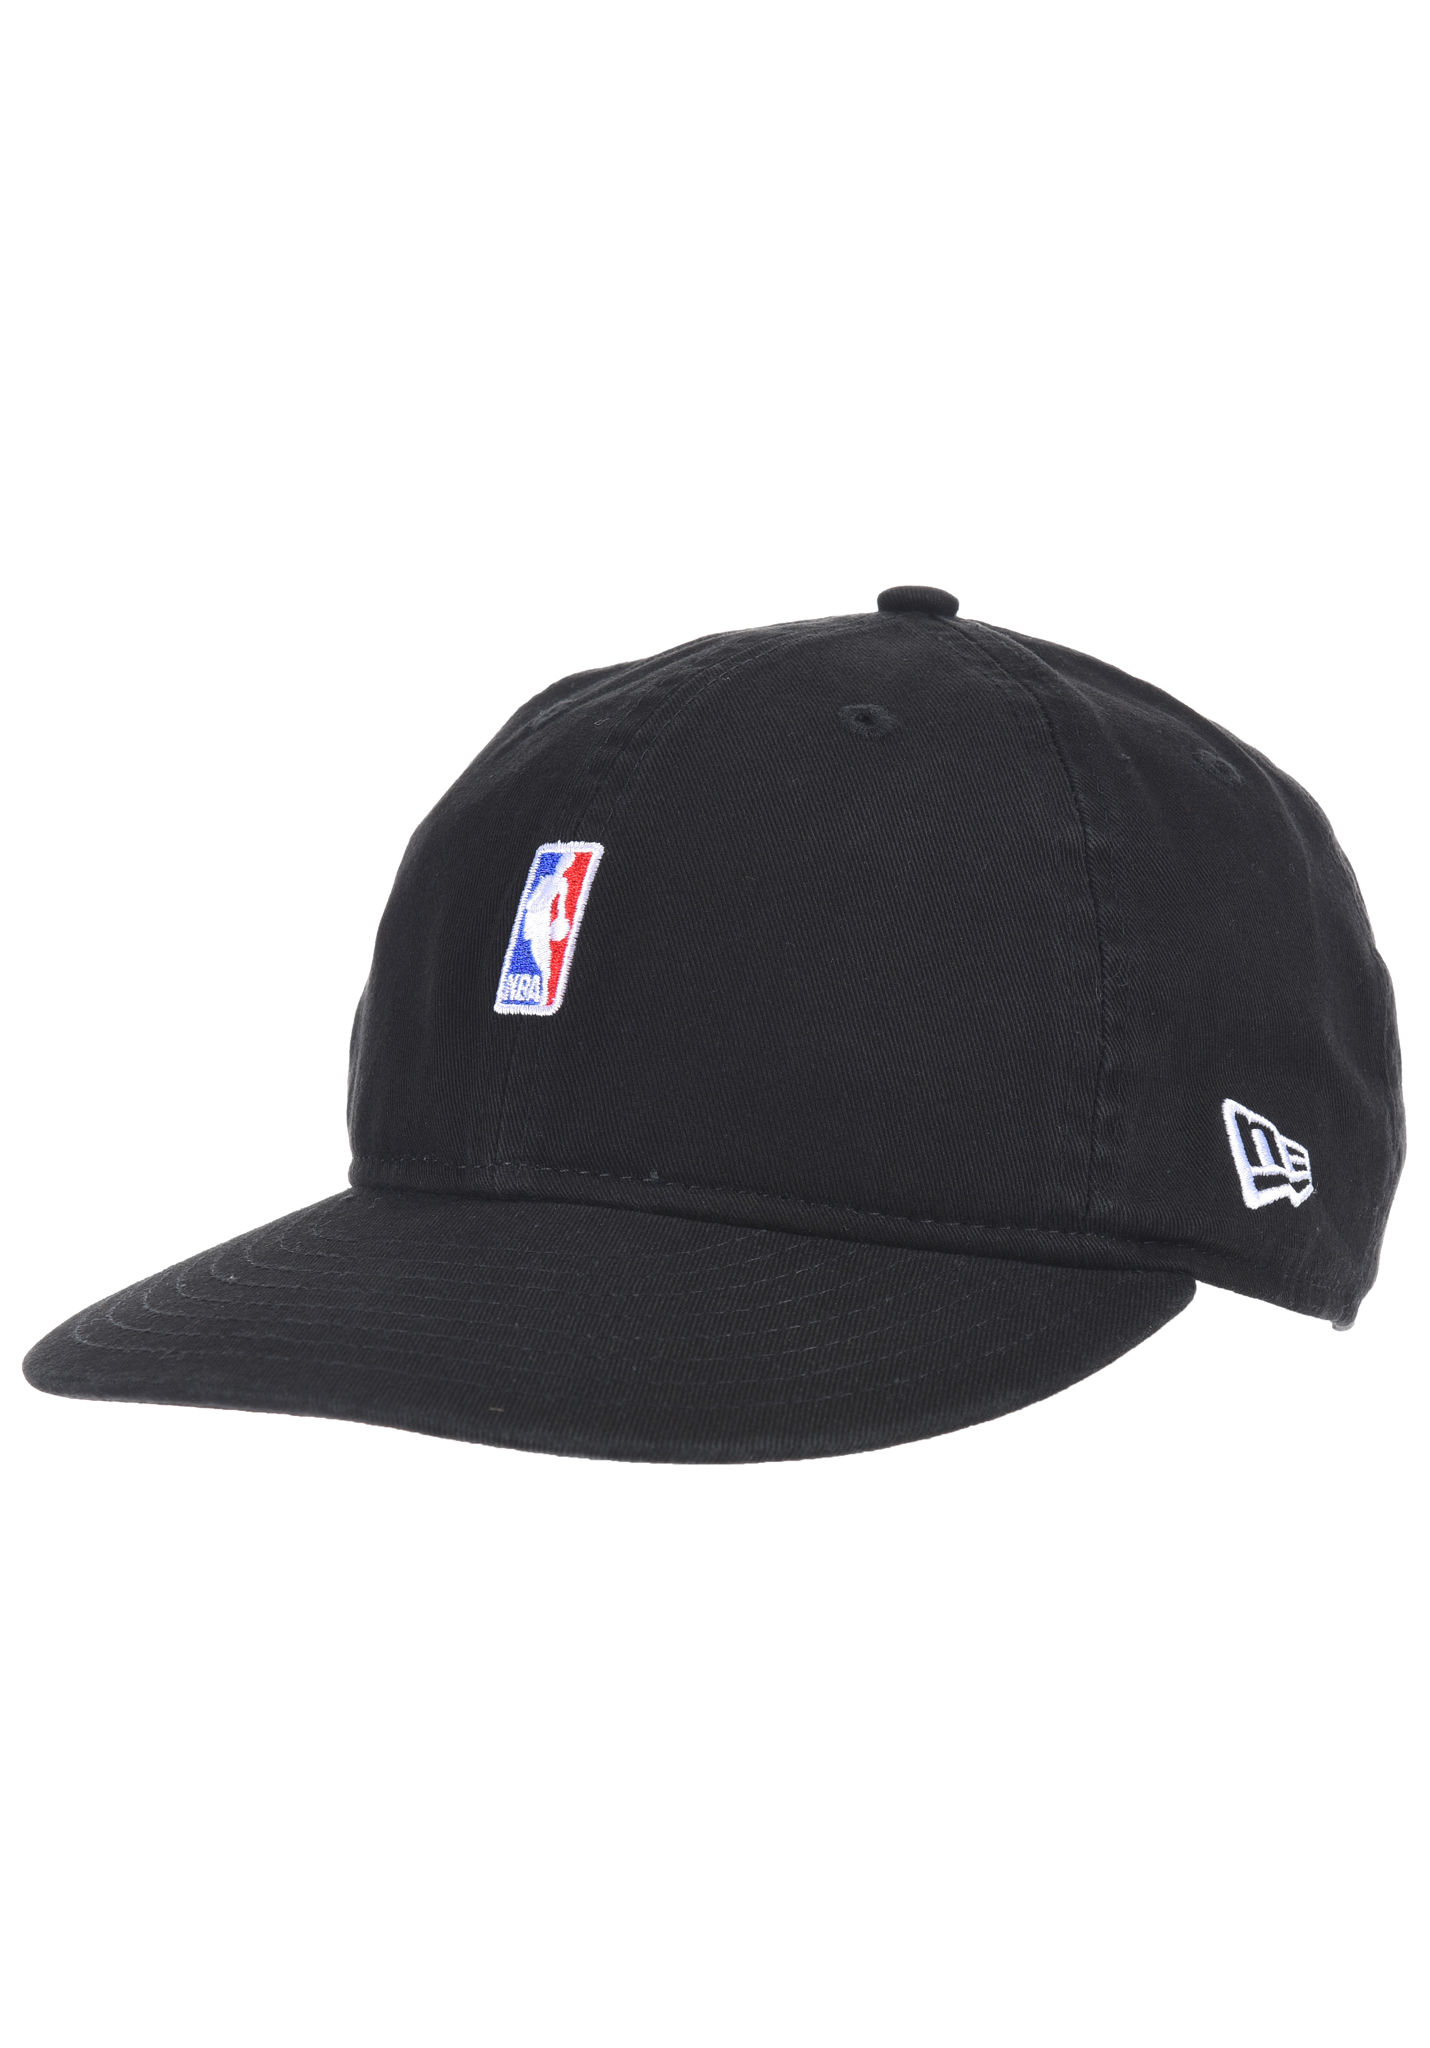 NEW Era NBA Logo - Snapback Cap for Men - Black - Planet Sports 186807ec3